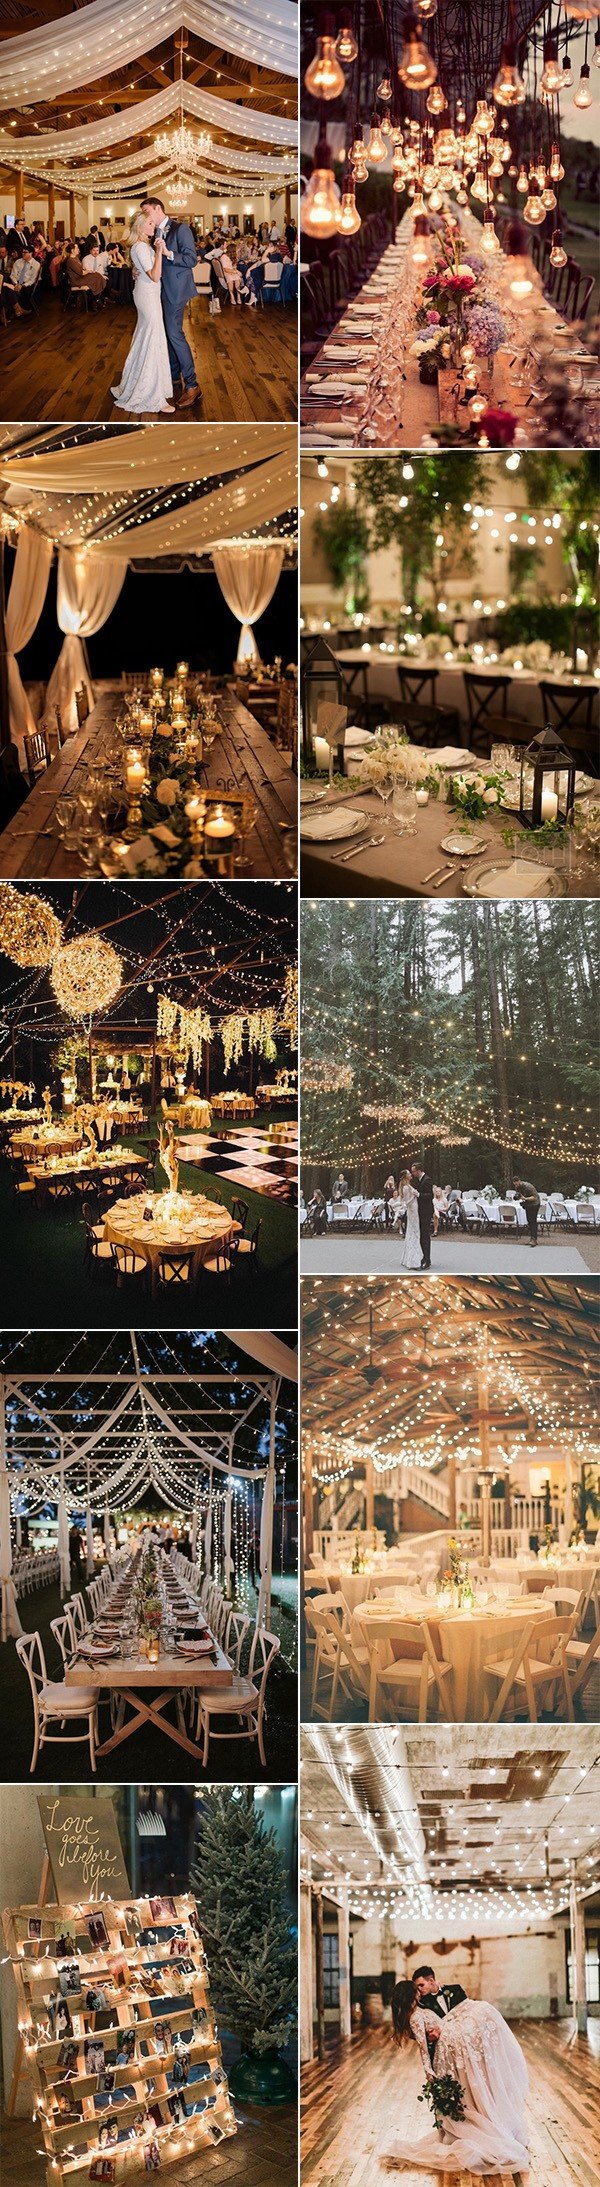 romantic wedding reception decoration ideas with lights